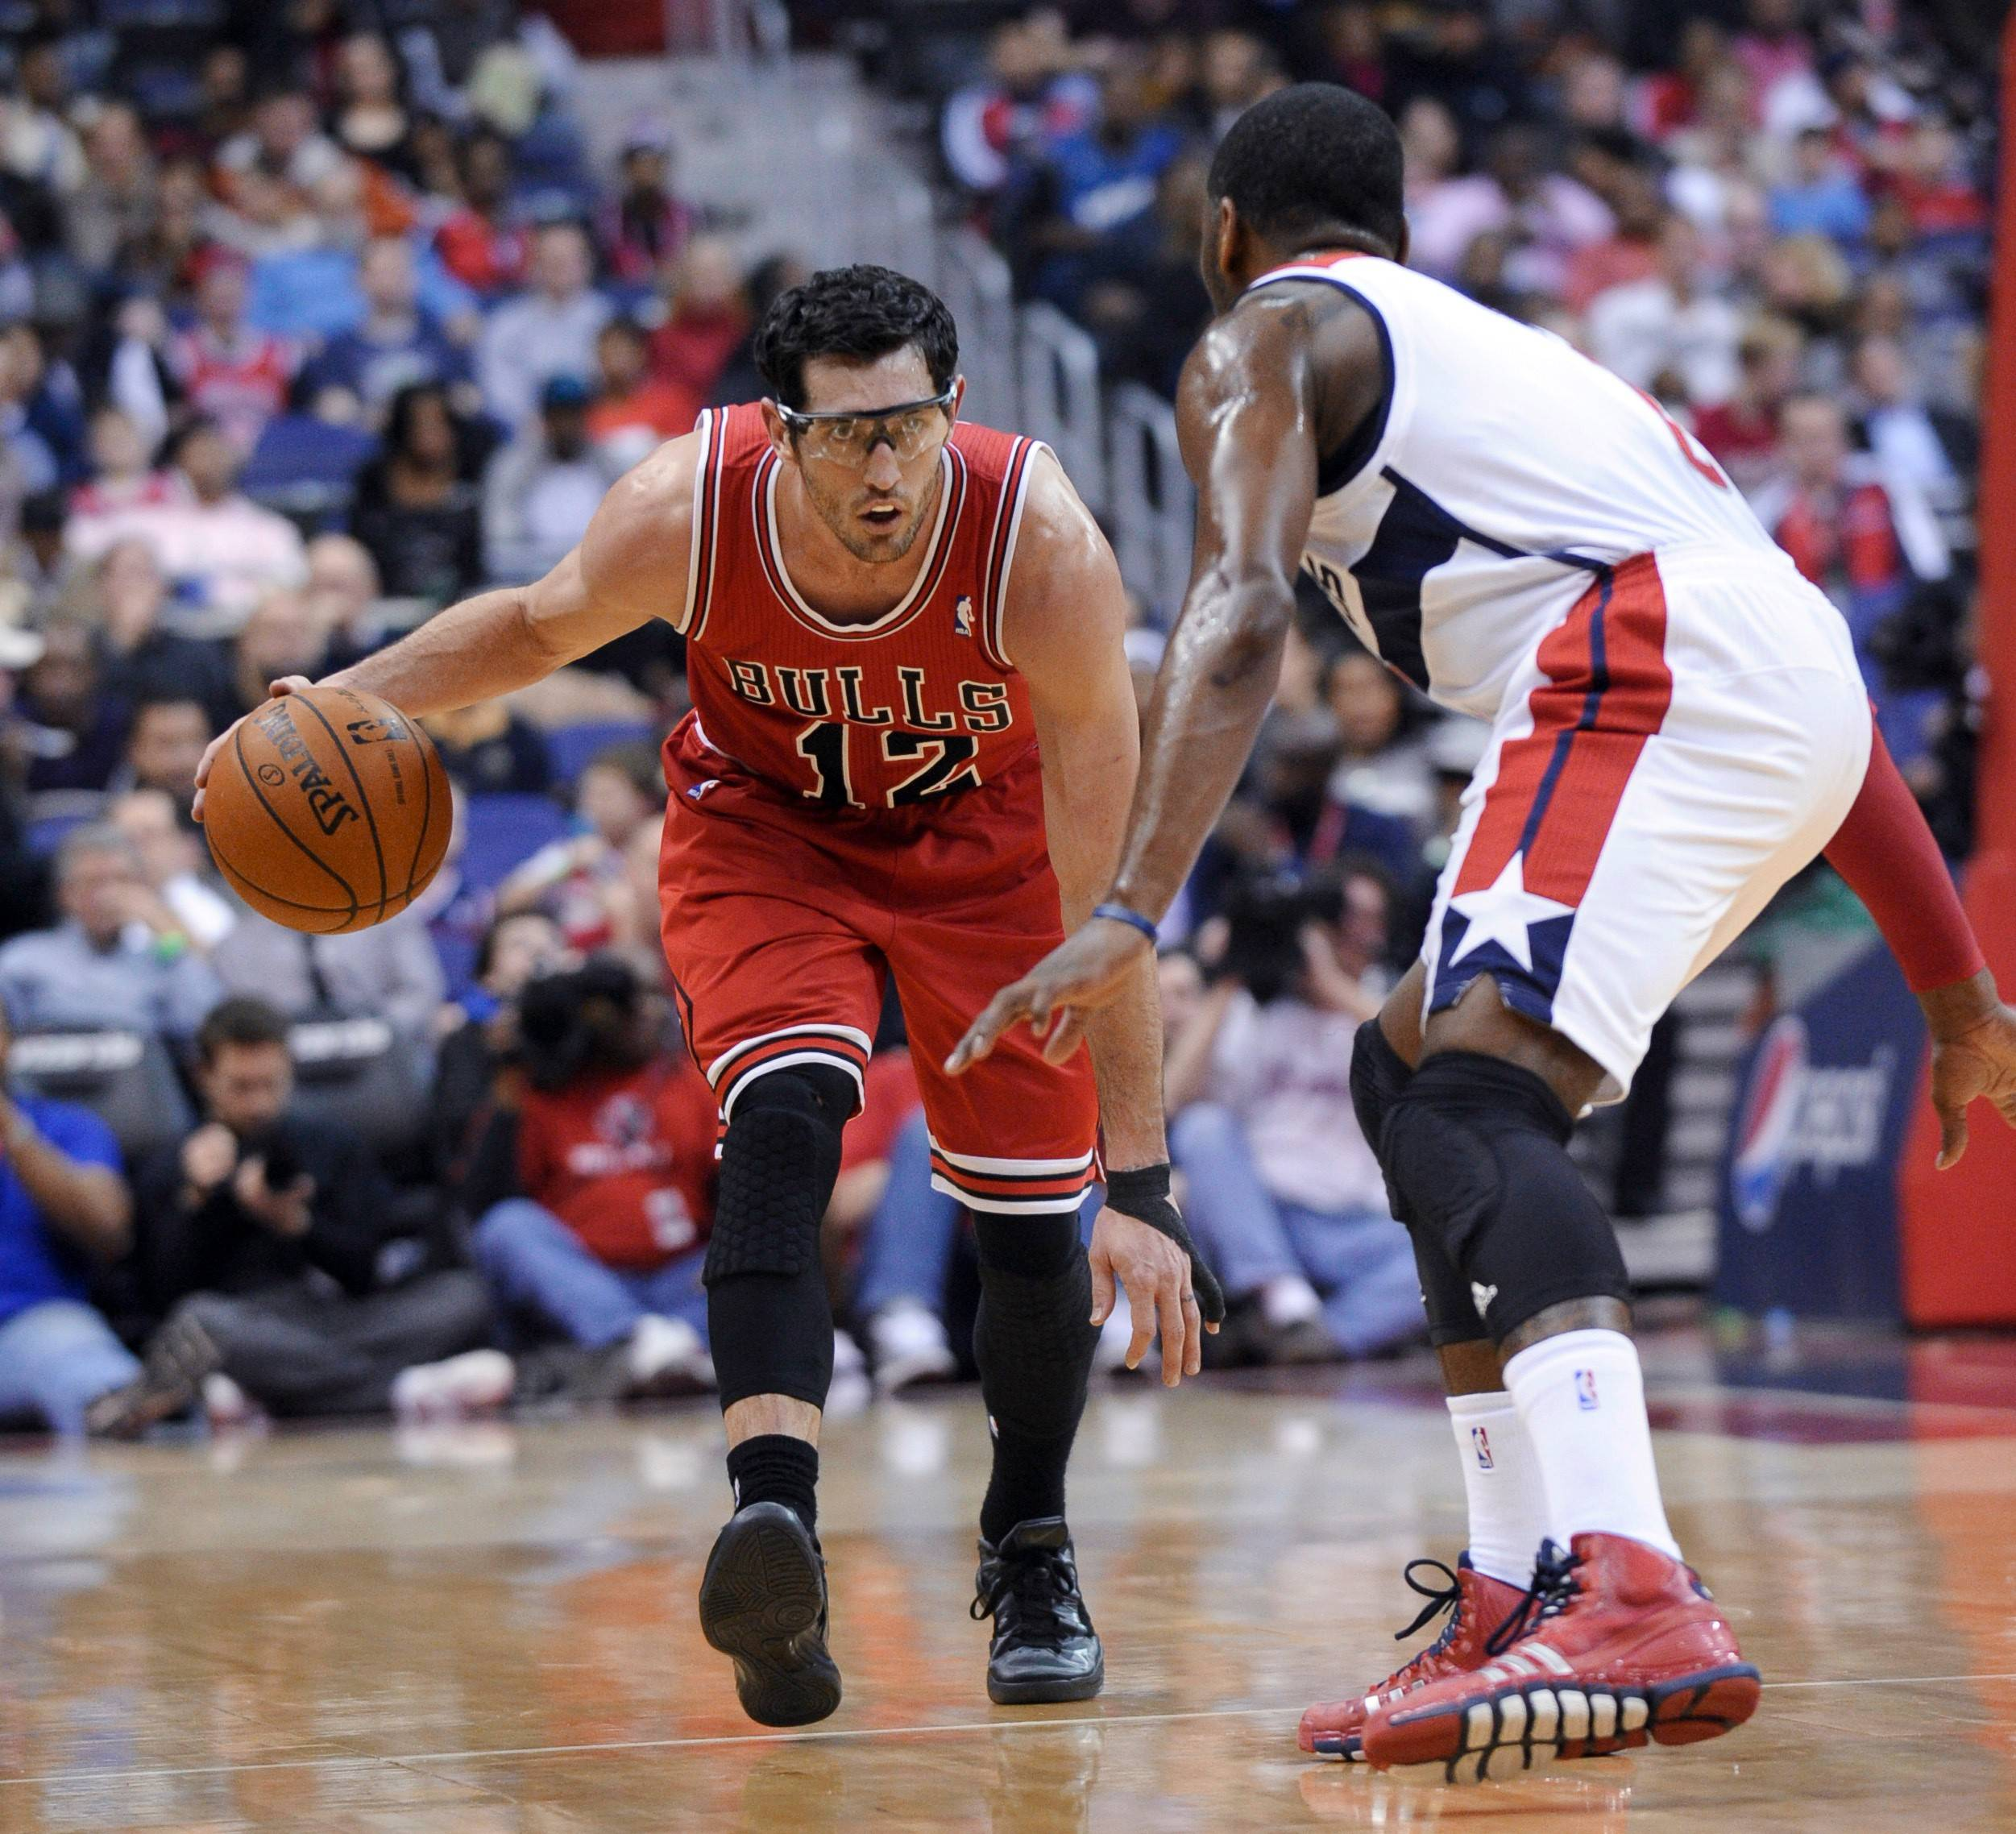 Bulls guard must shut down Wizards' Wall